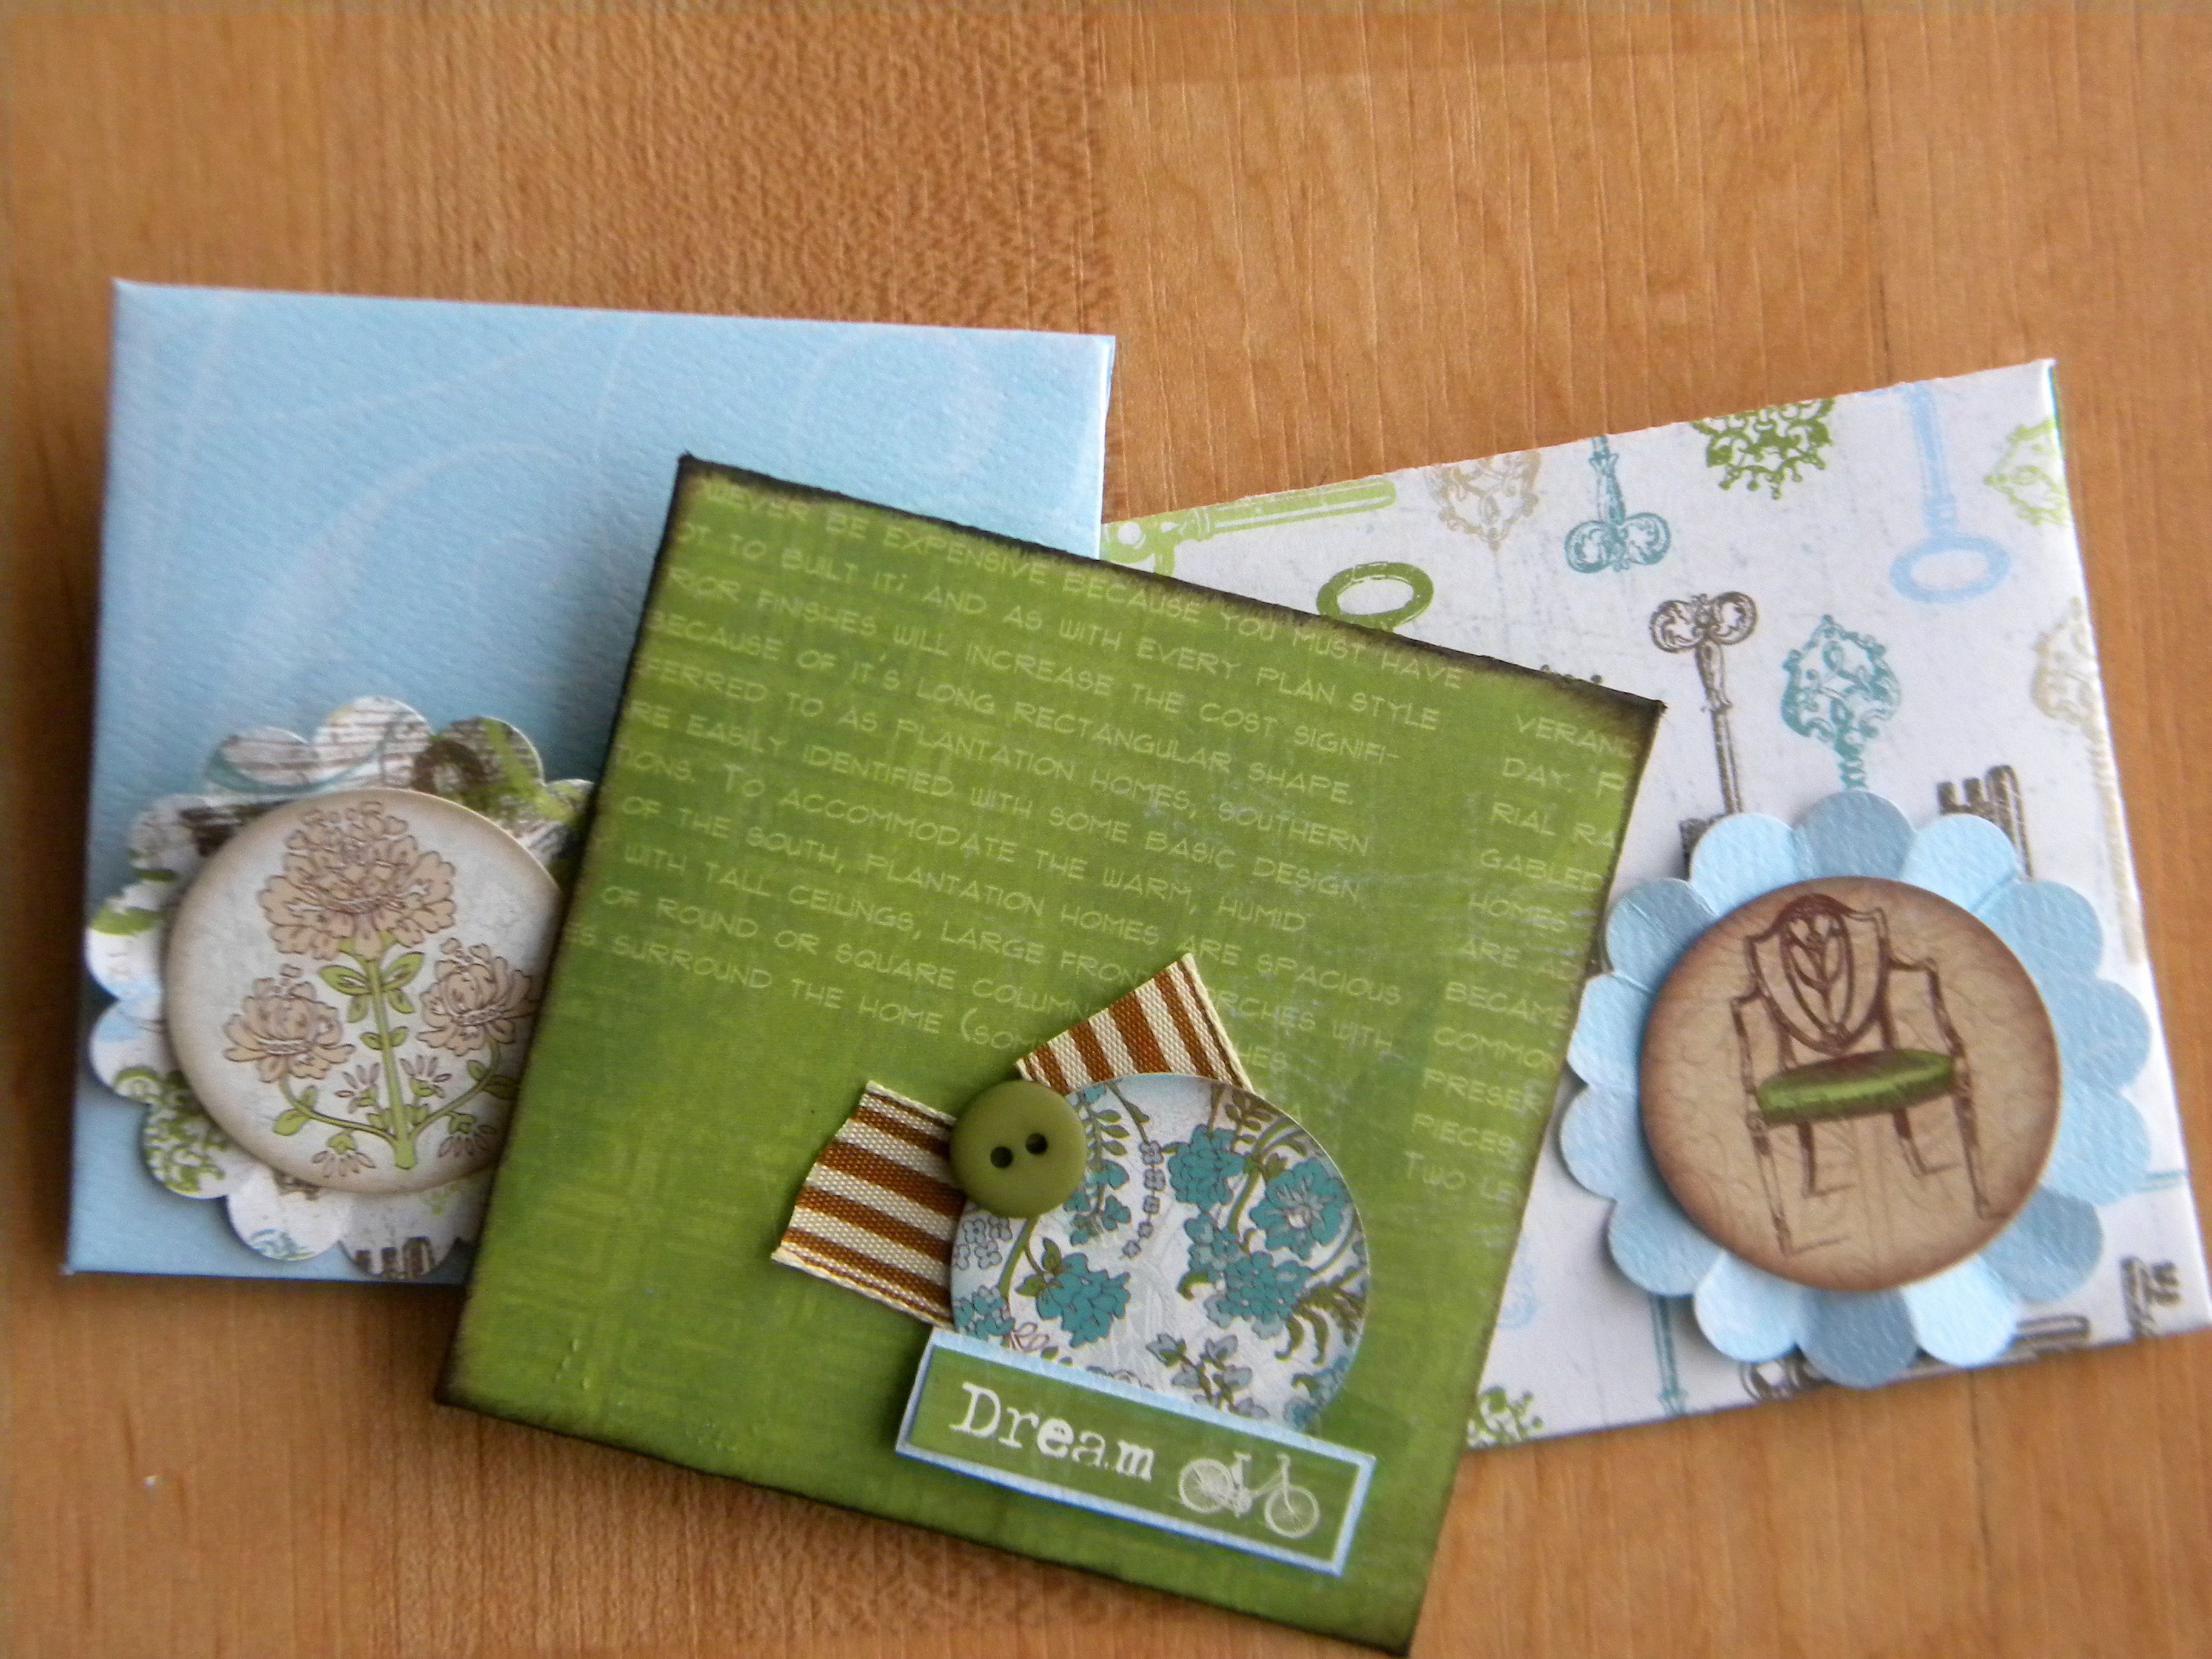 1000+ images about Envelope Lick it on Pinterest   Gift card ...